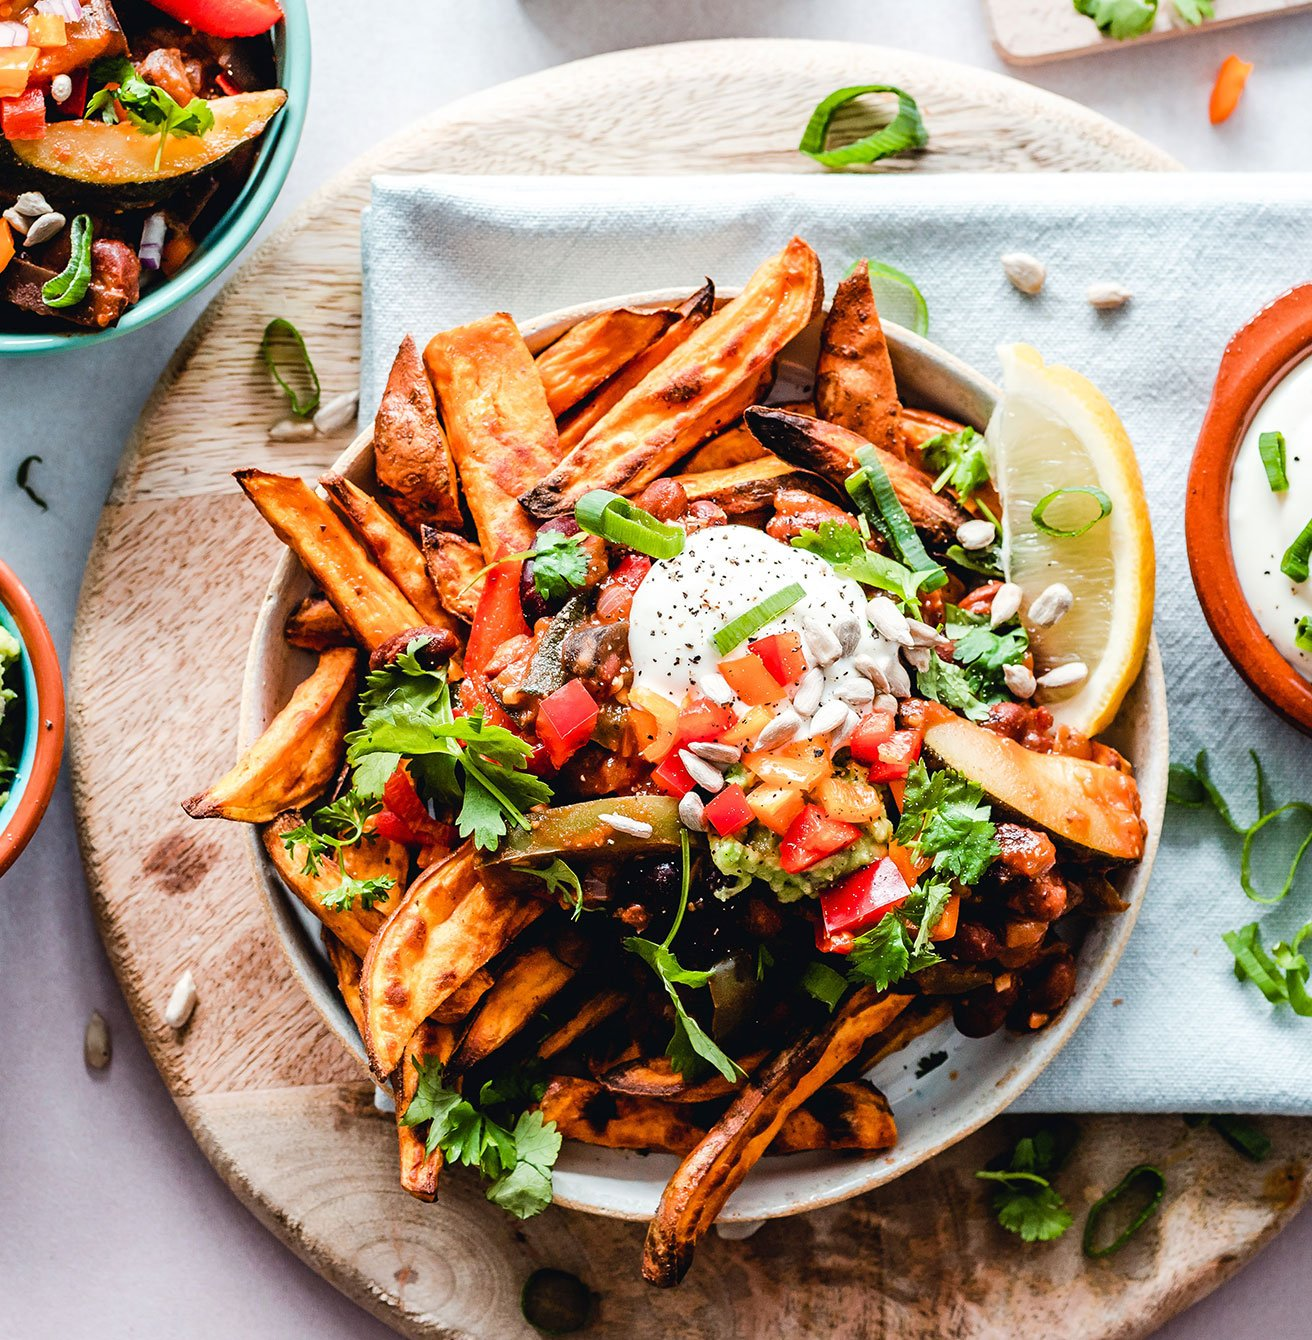 Spicy fries with vegetables salsa and melted cheese